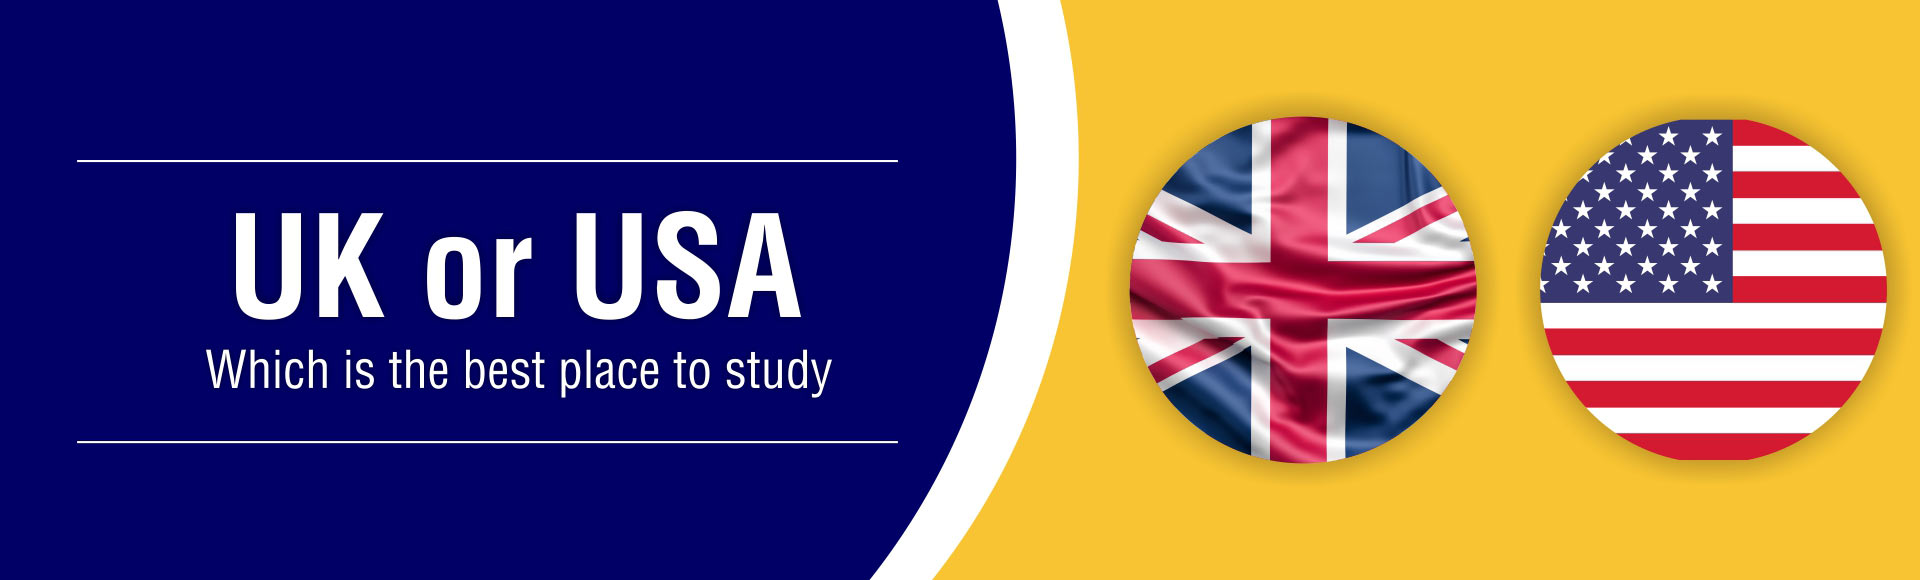 The UK or USA - Which is the best place to study?